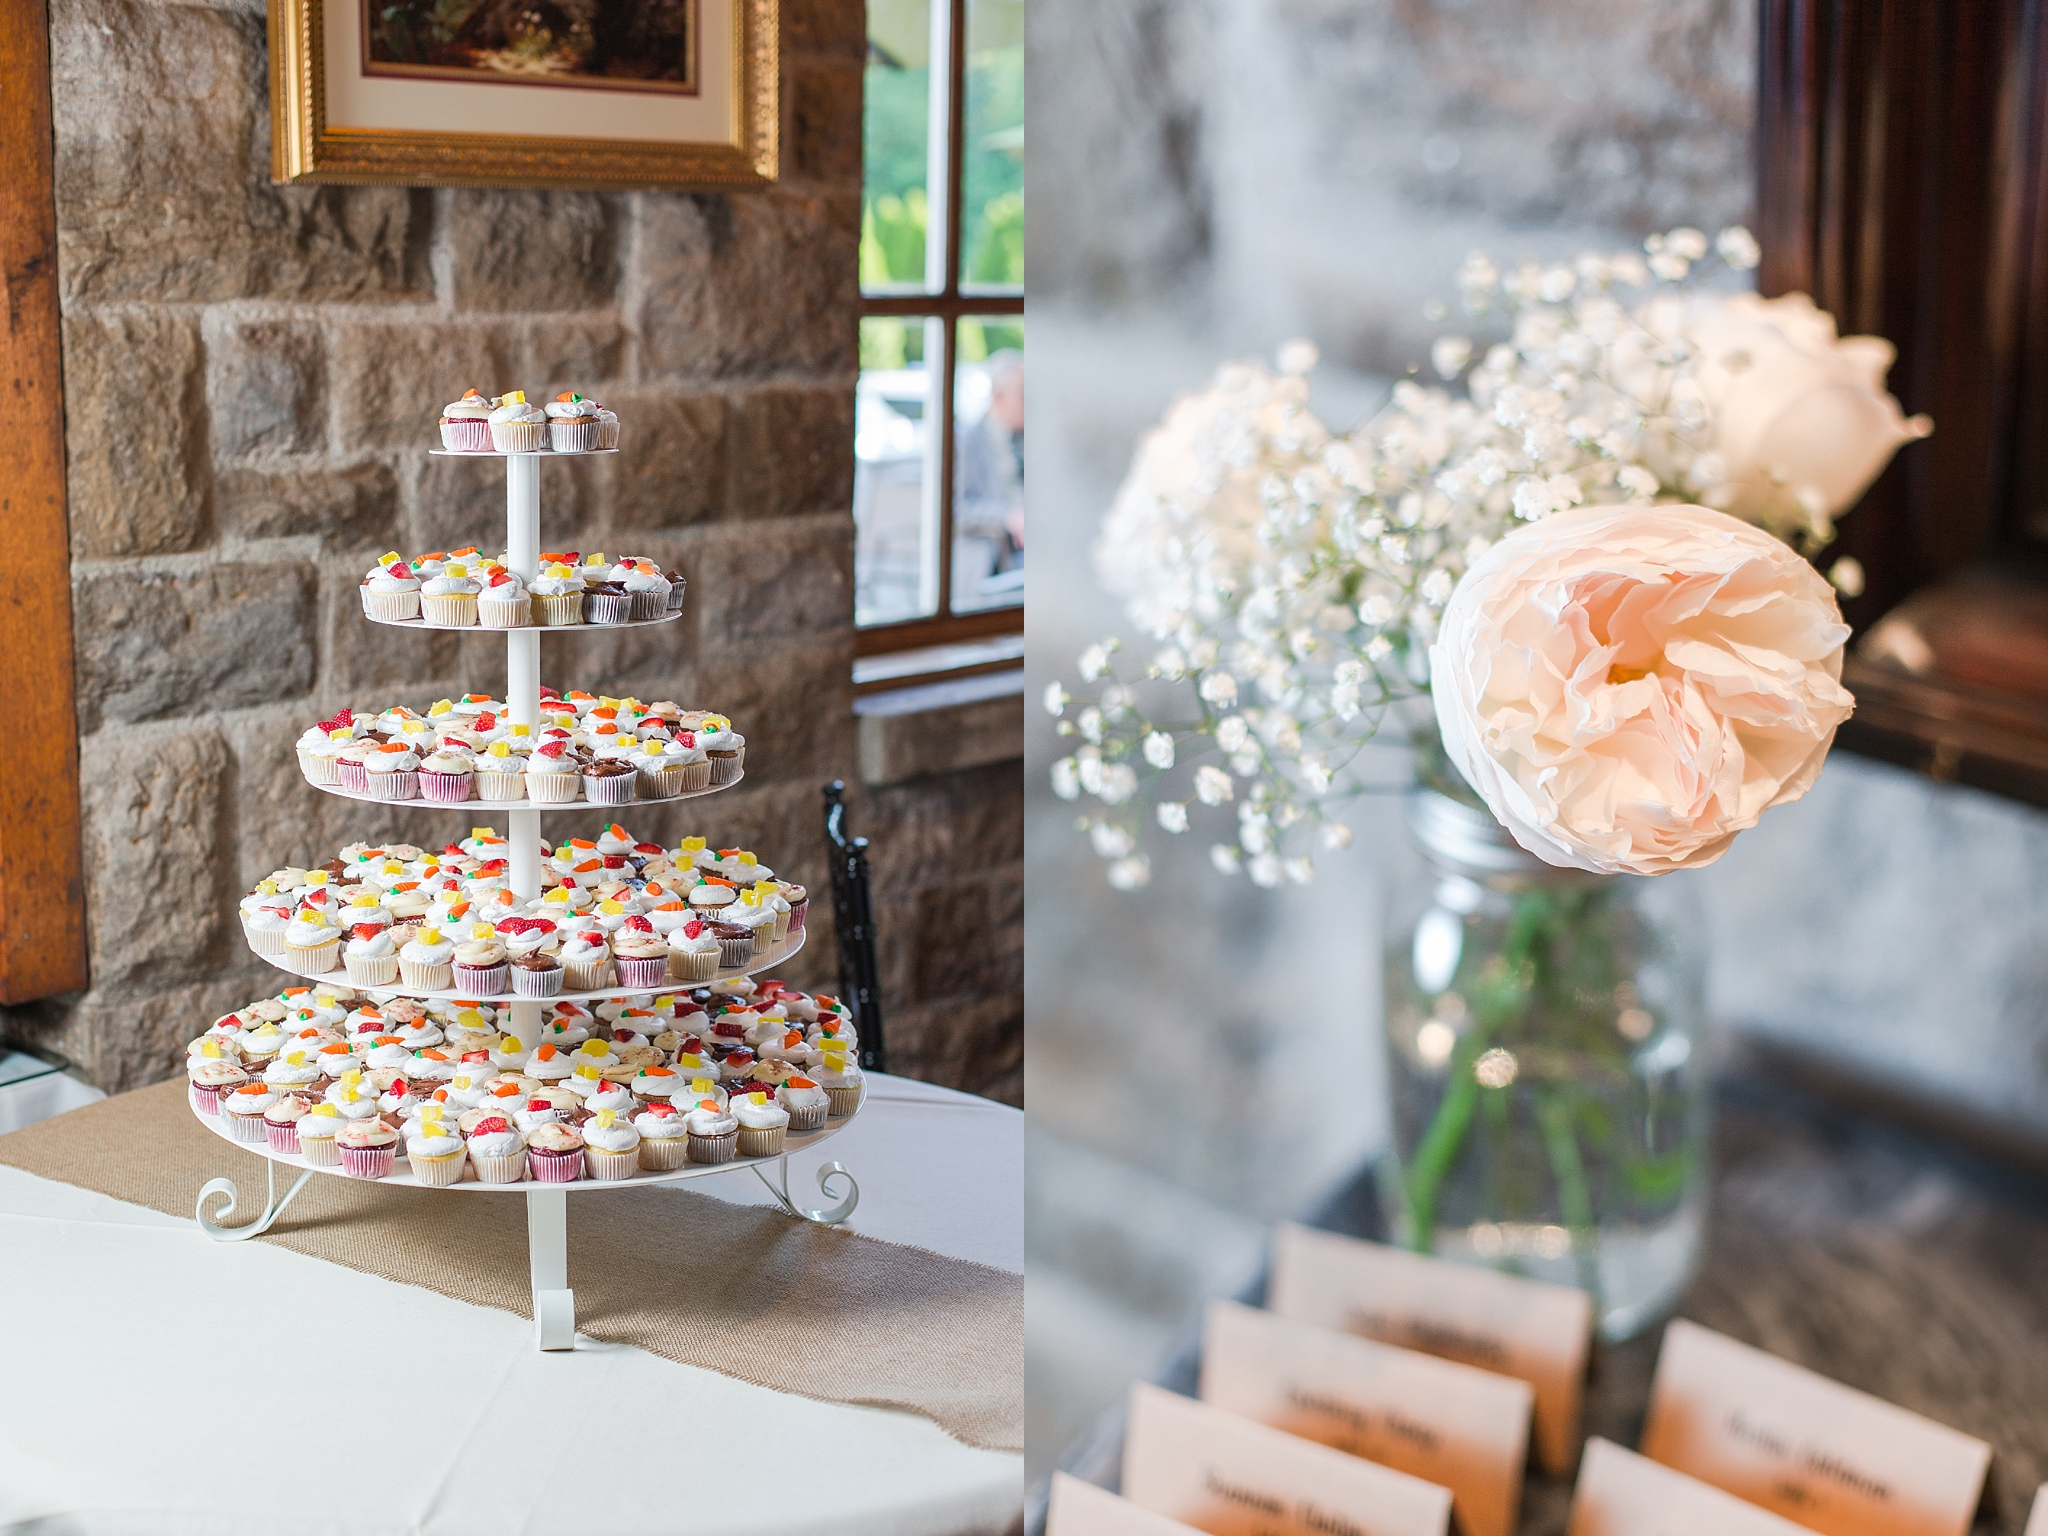 fun-candid-laid-back-wedding-photos-at-wellers-carriage-house-in-saline-michigan-and-at-the-eagle-crest-golf-resort-by-courtney-carolyn-photography_0080.jpg